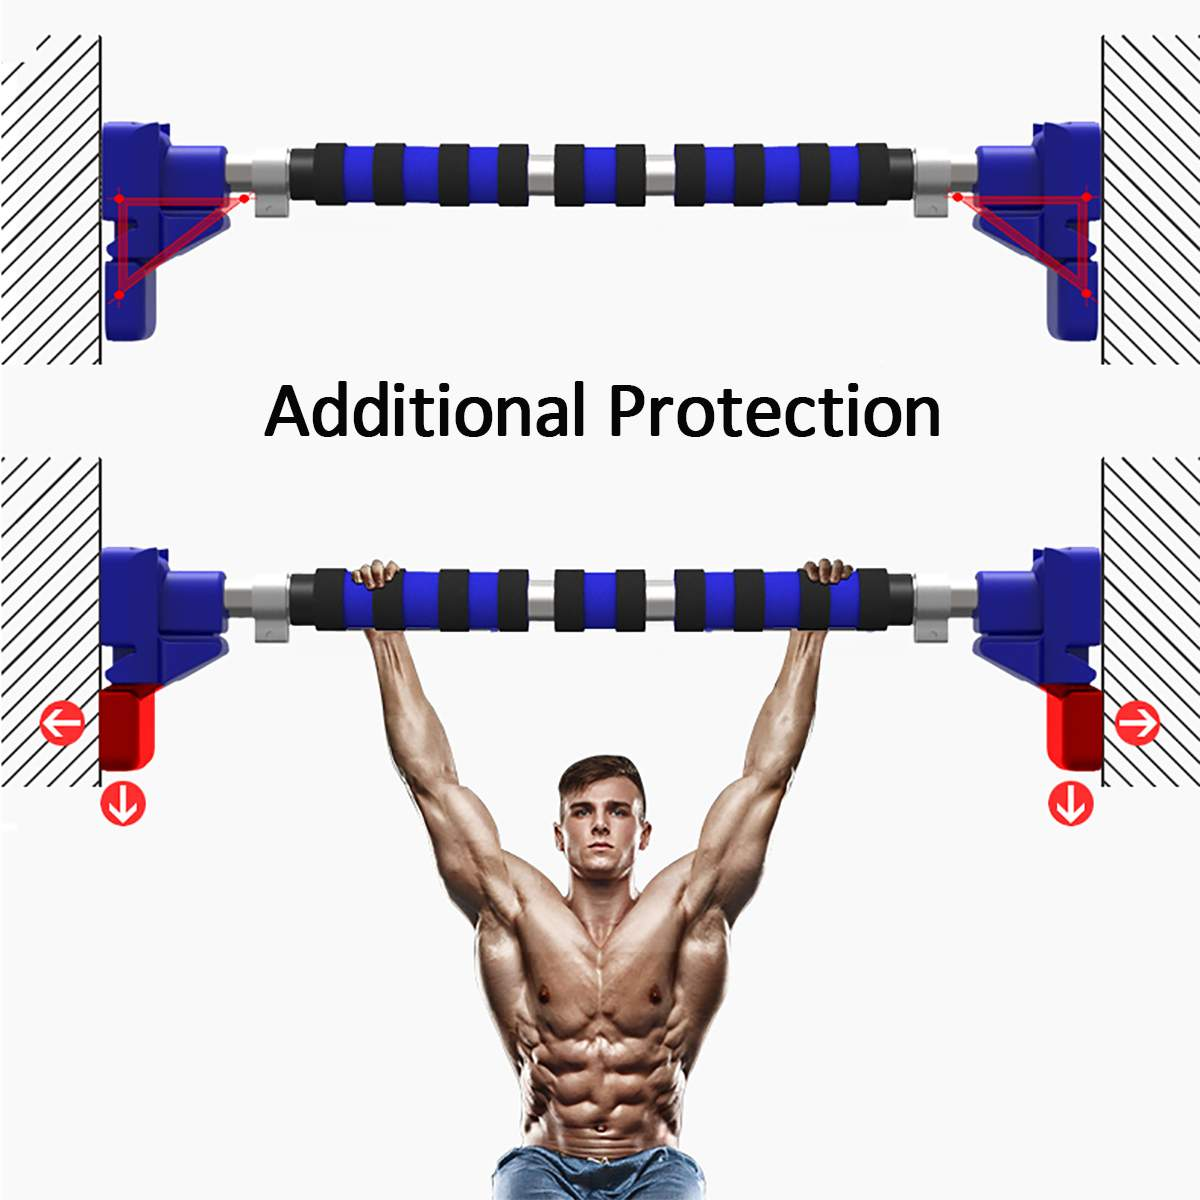 500Kg Horizontal Pull Up Bar Made Of Stainless Steel And Sponge Material For Gym Workout